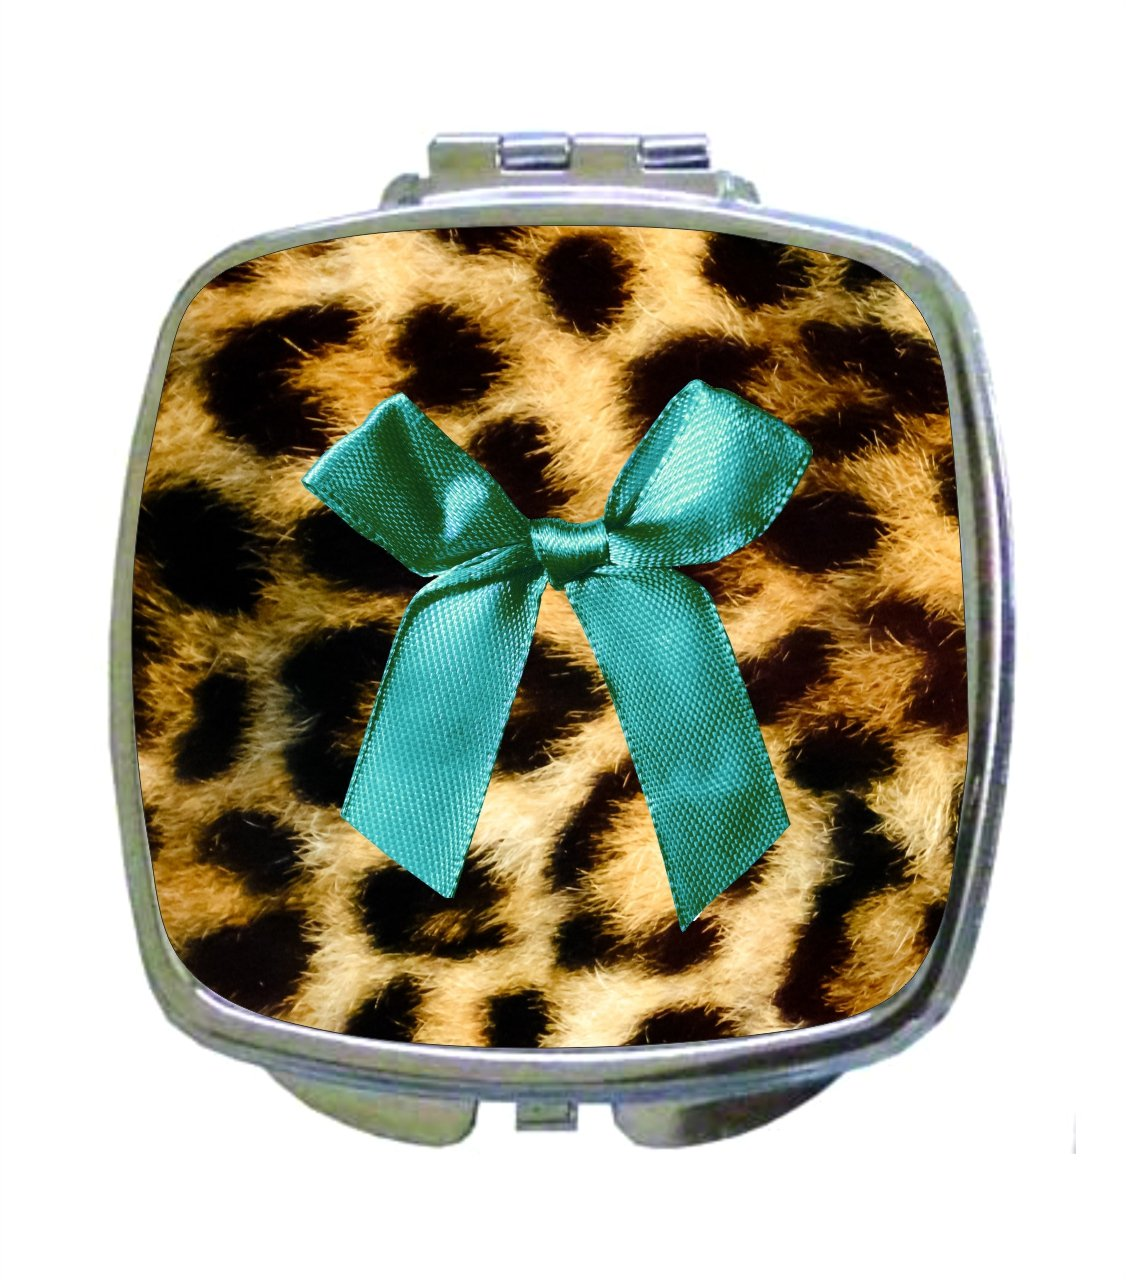 Blue Bow/Ribbon Print on Leopard Skin Animal Print - Compact Mirror in Silvertone - Square Shaped - Pocket Sized